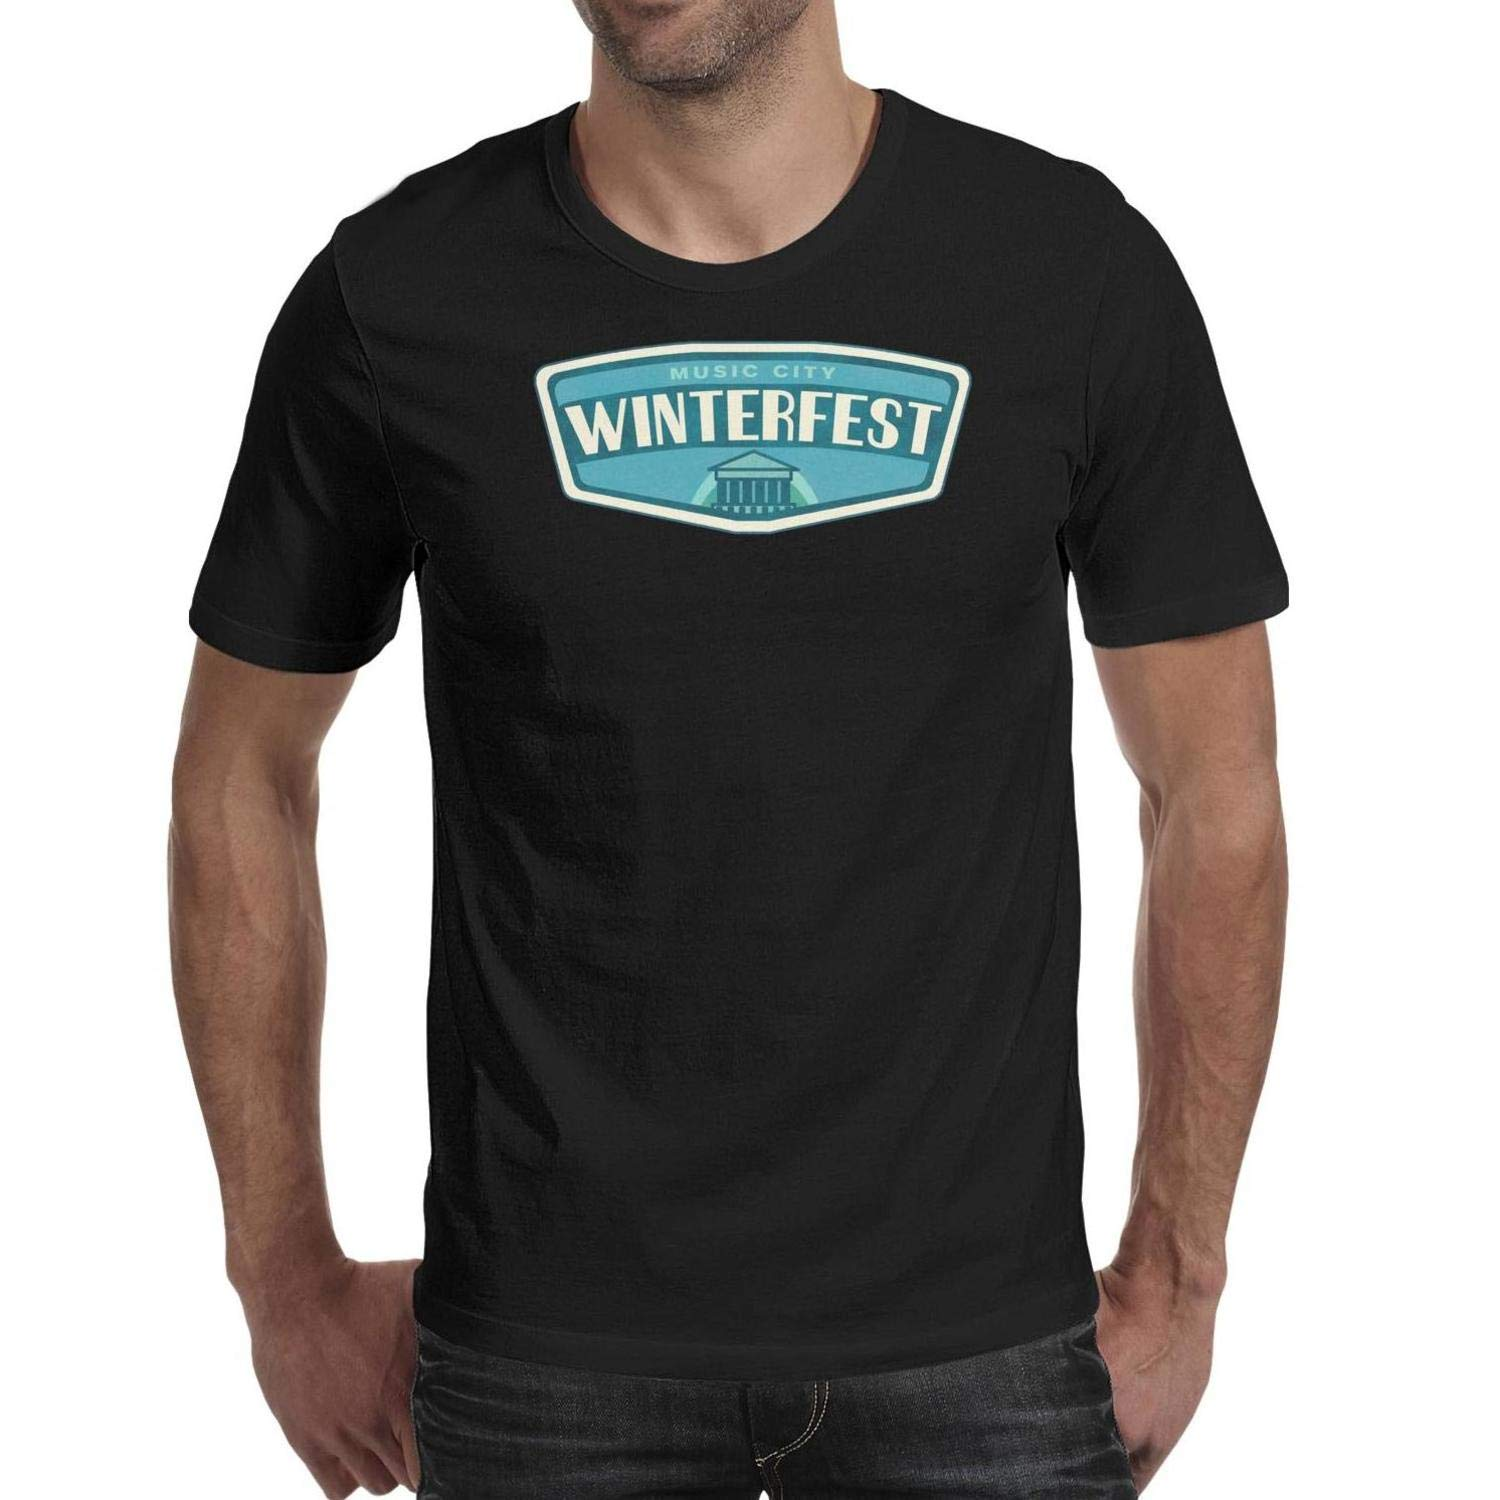 TopCrazy Winterfest t Shirts O-Neck Graphic Perfomance T Shirts for Men